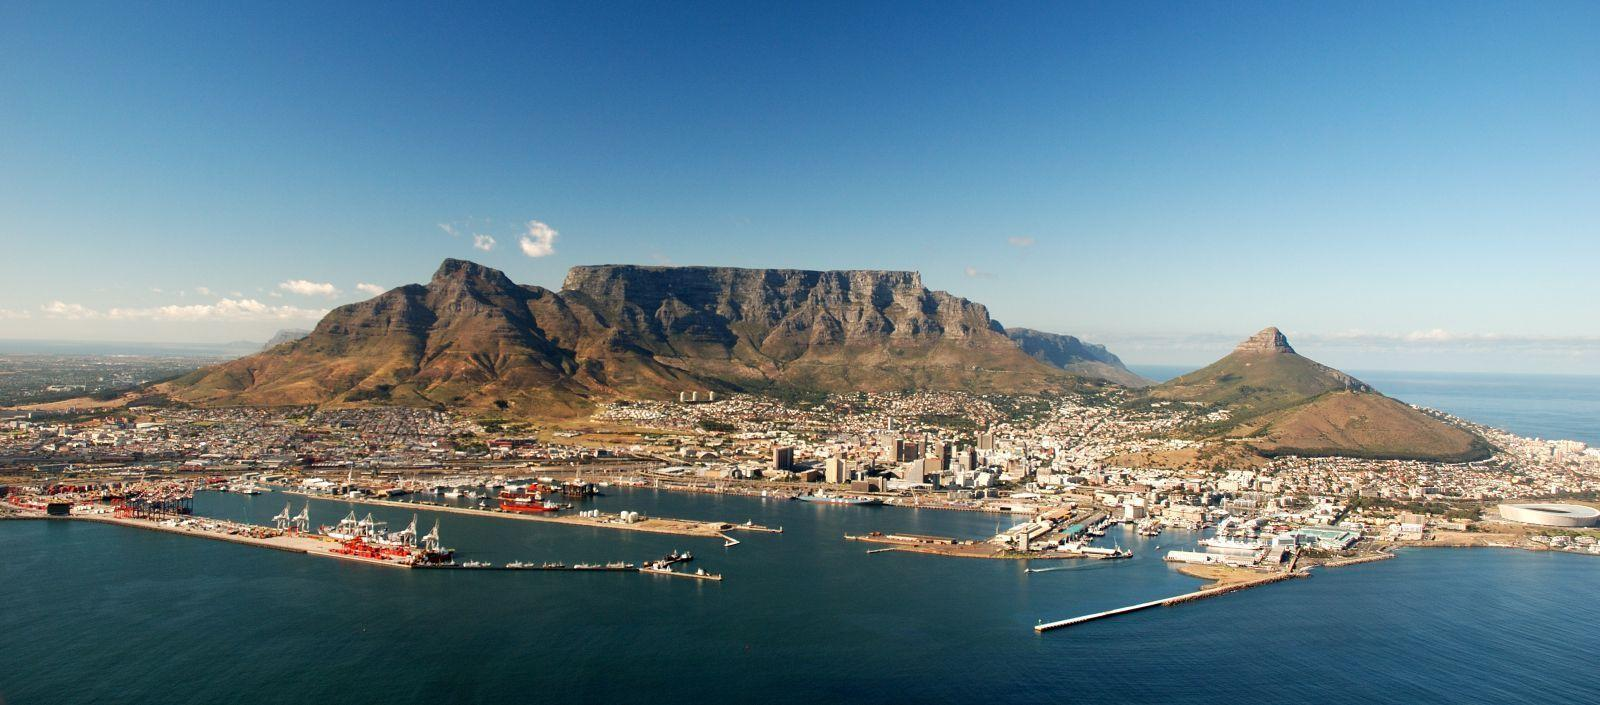 ✅[35+] Cape Town - Android, iPhone, Desktop HD Backgrounds / Wallpapers  (1080p, 4k) (1600x705) (2020)